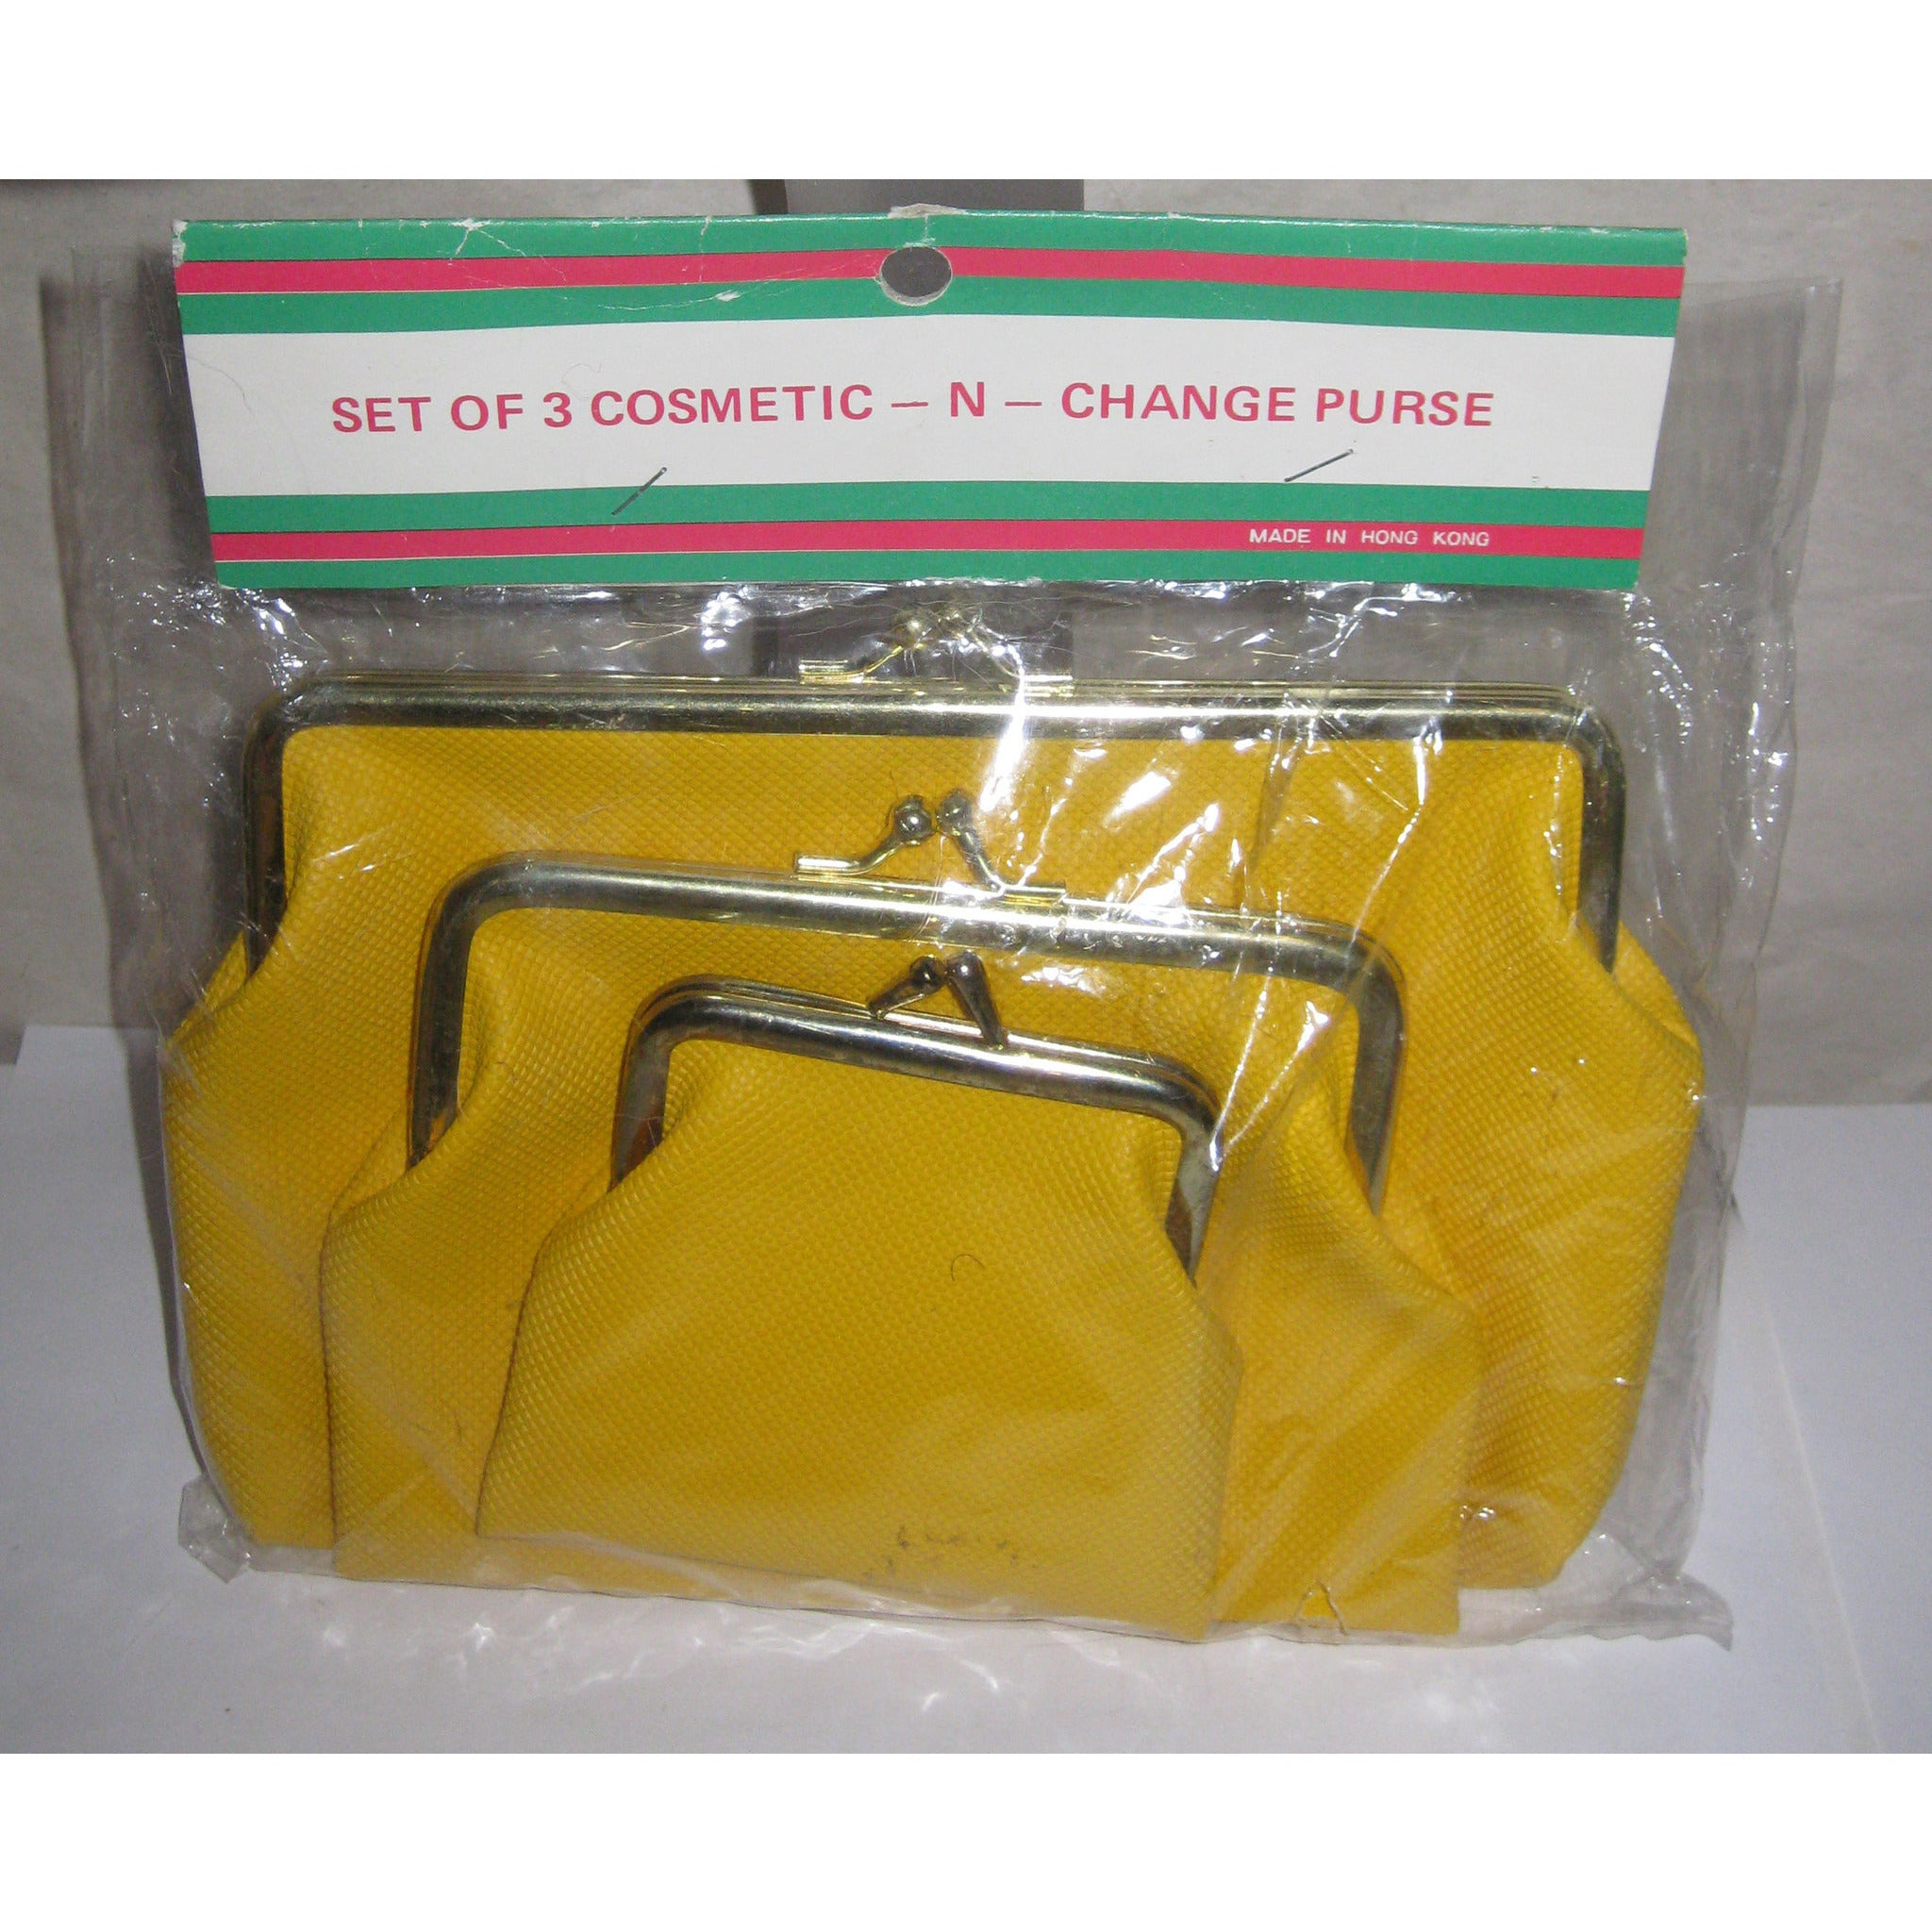 Vintage Mustard Cosmetic & Change Purse Set